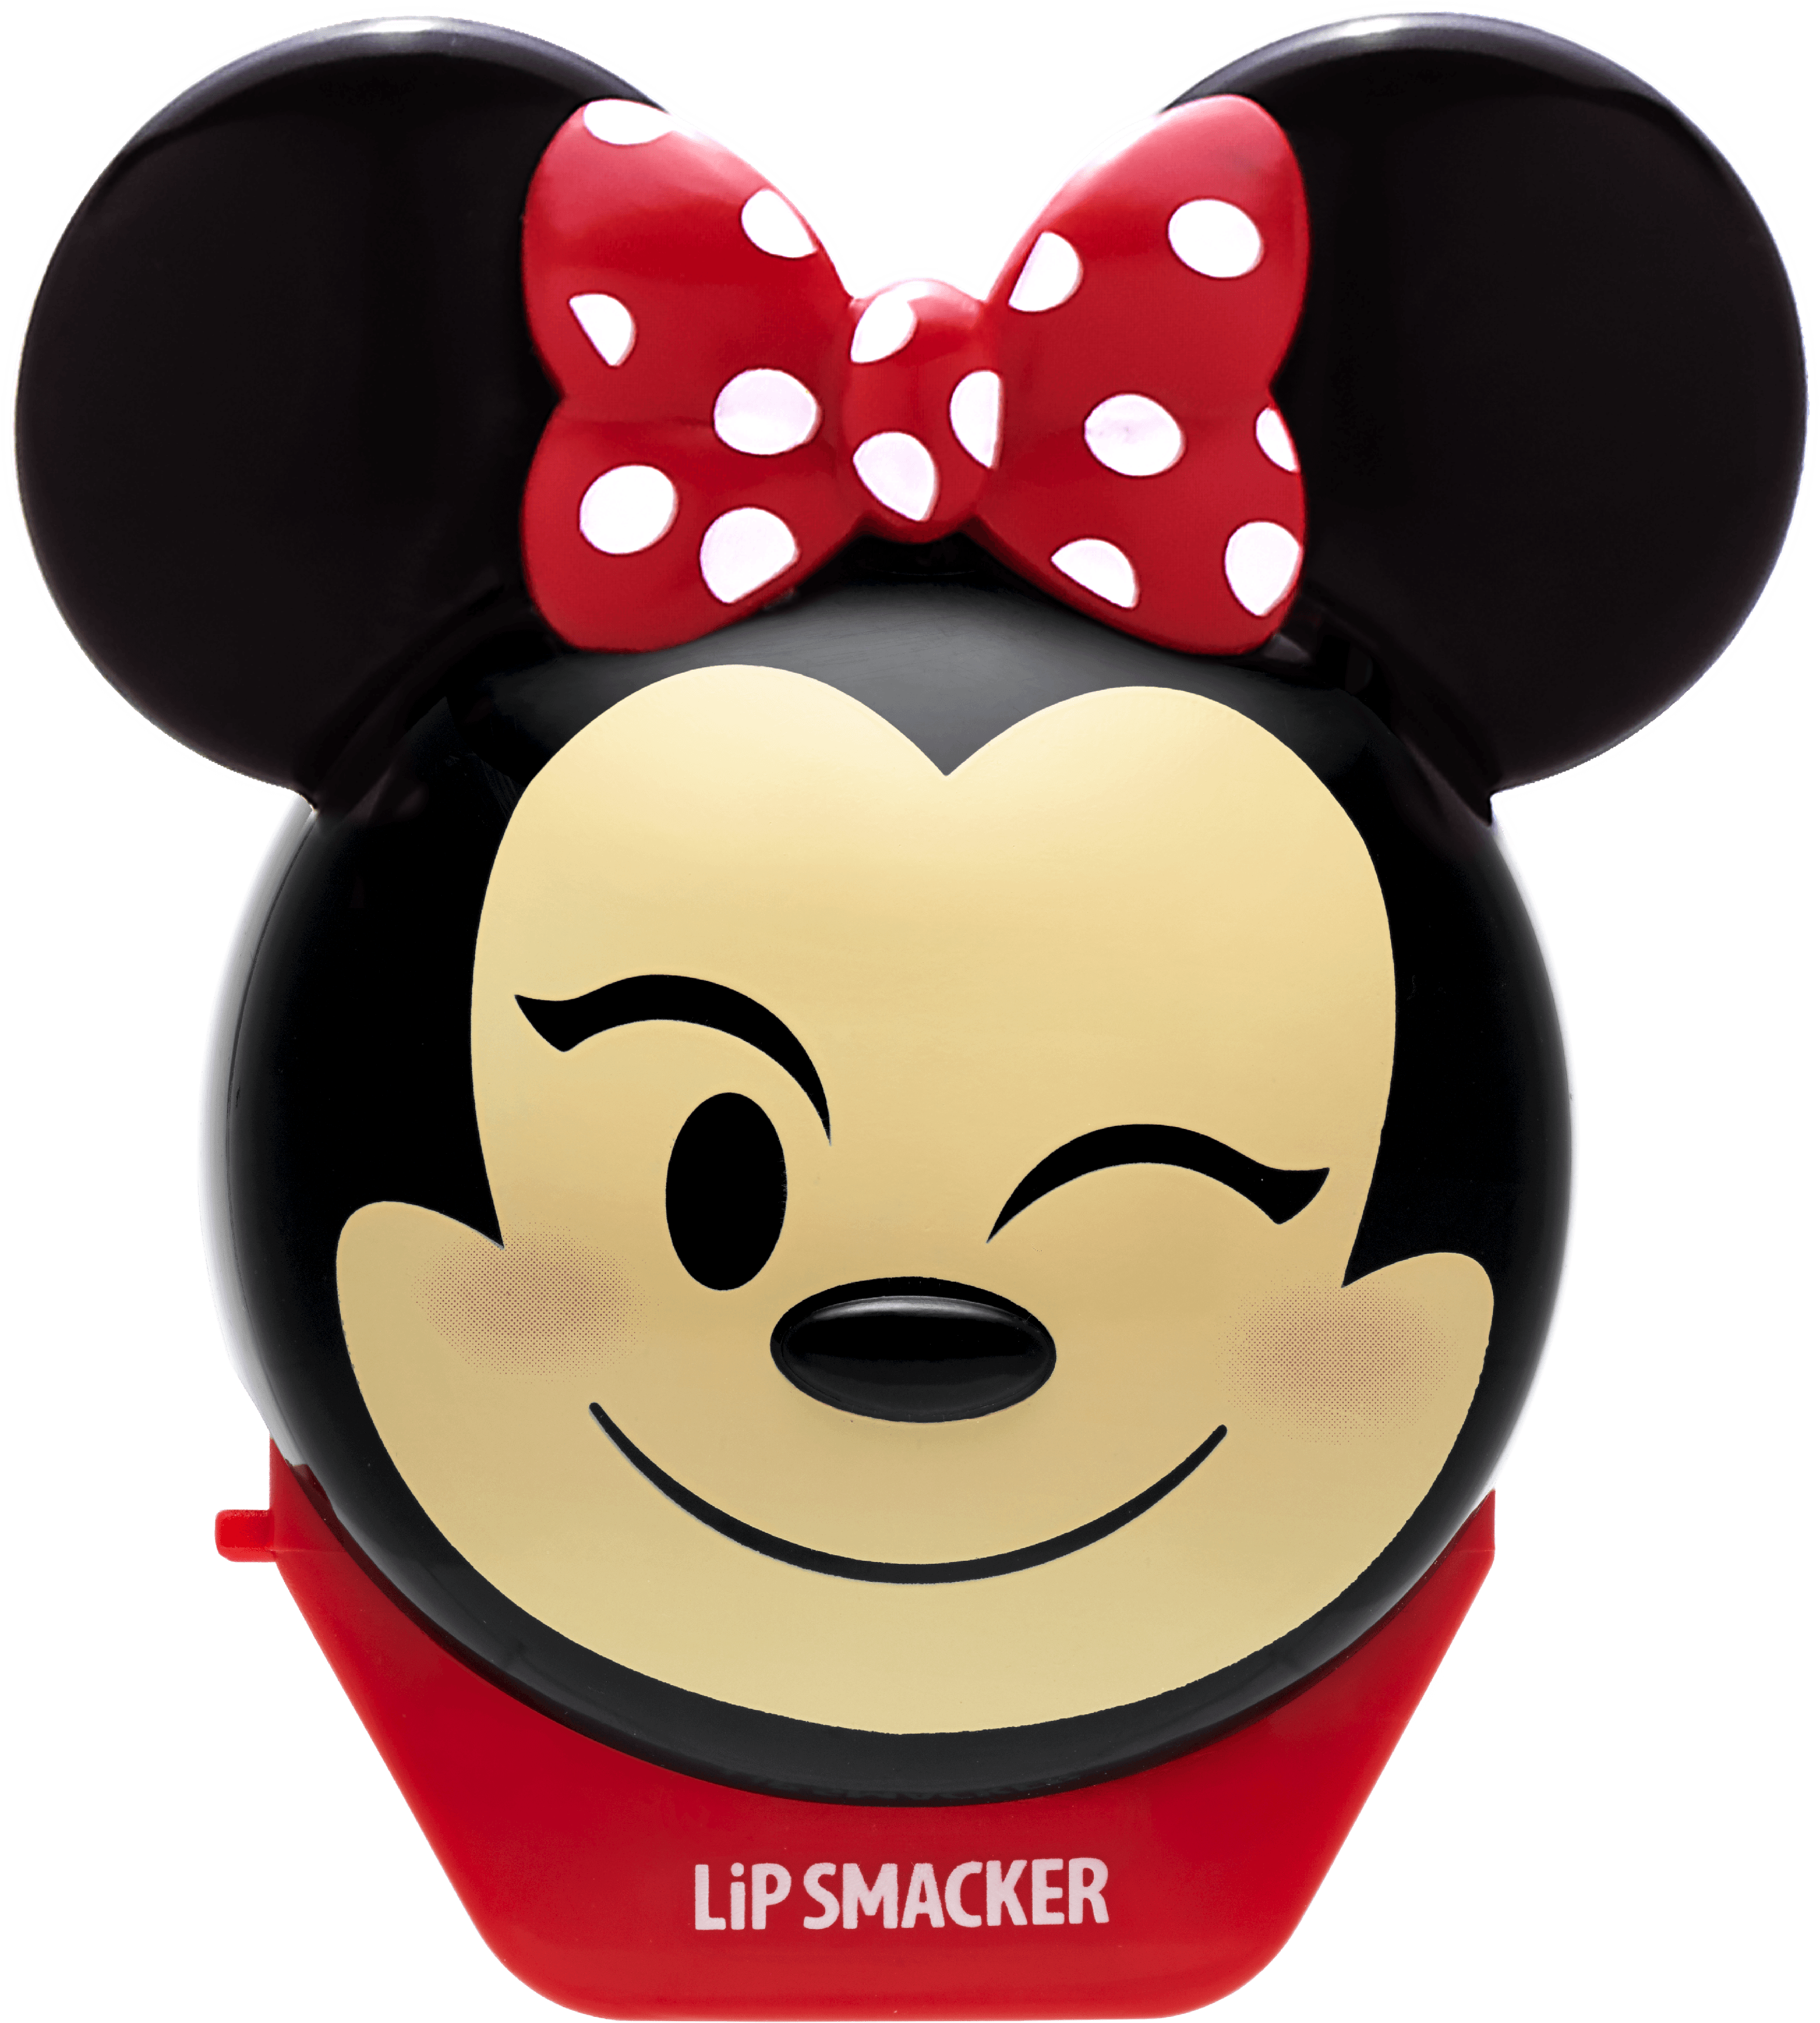 Lip Smackers Emoji Minnie